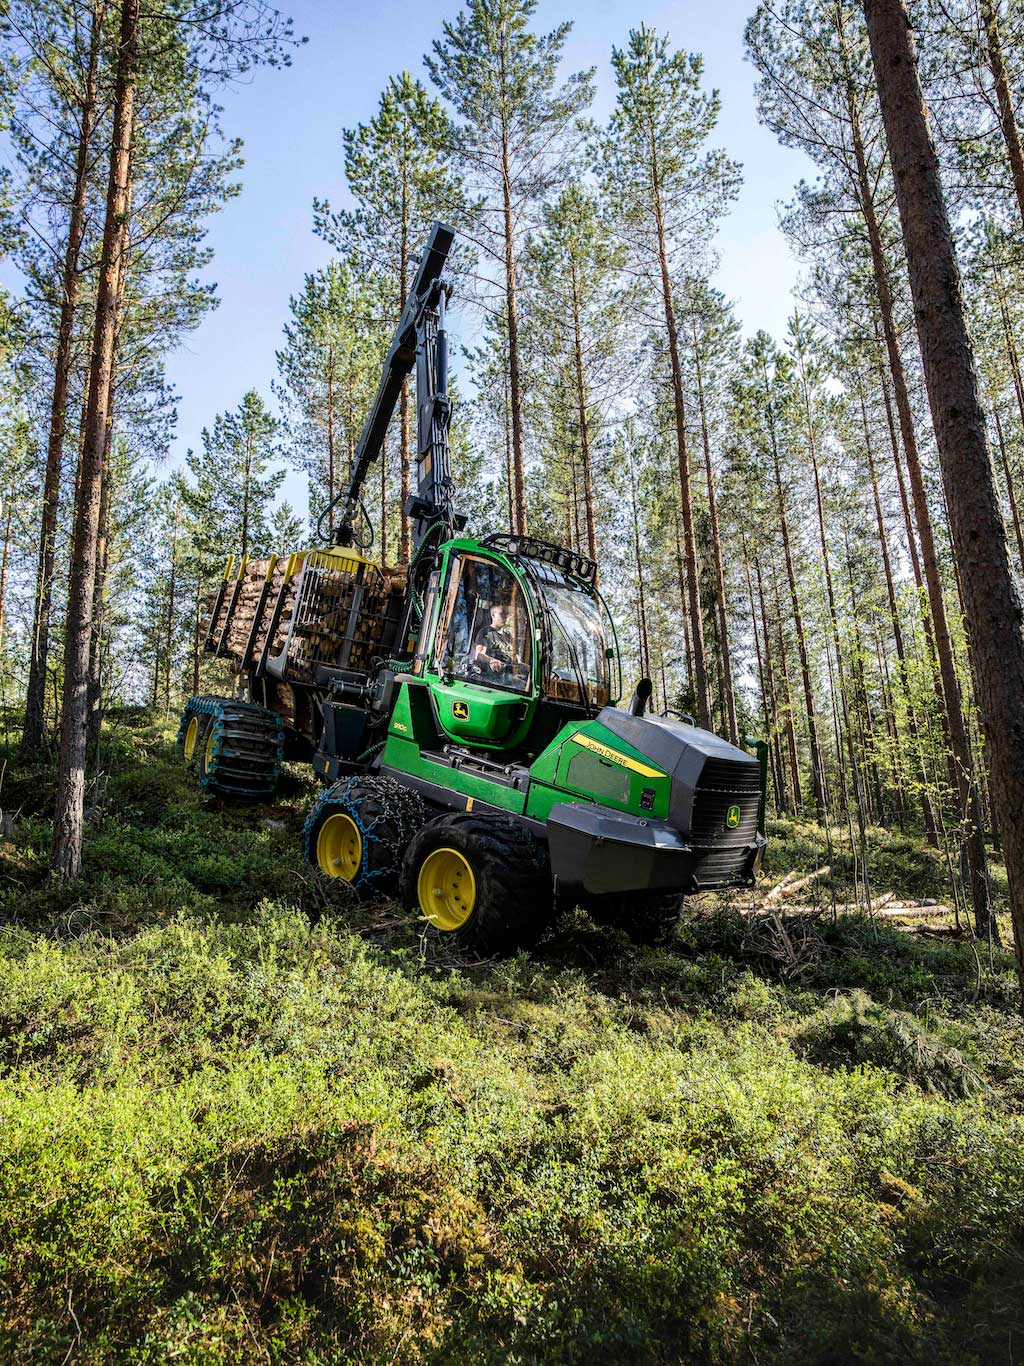 The 910G Forwarder in action in the woods.